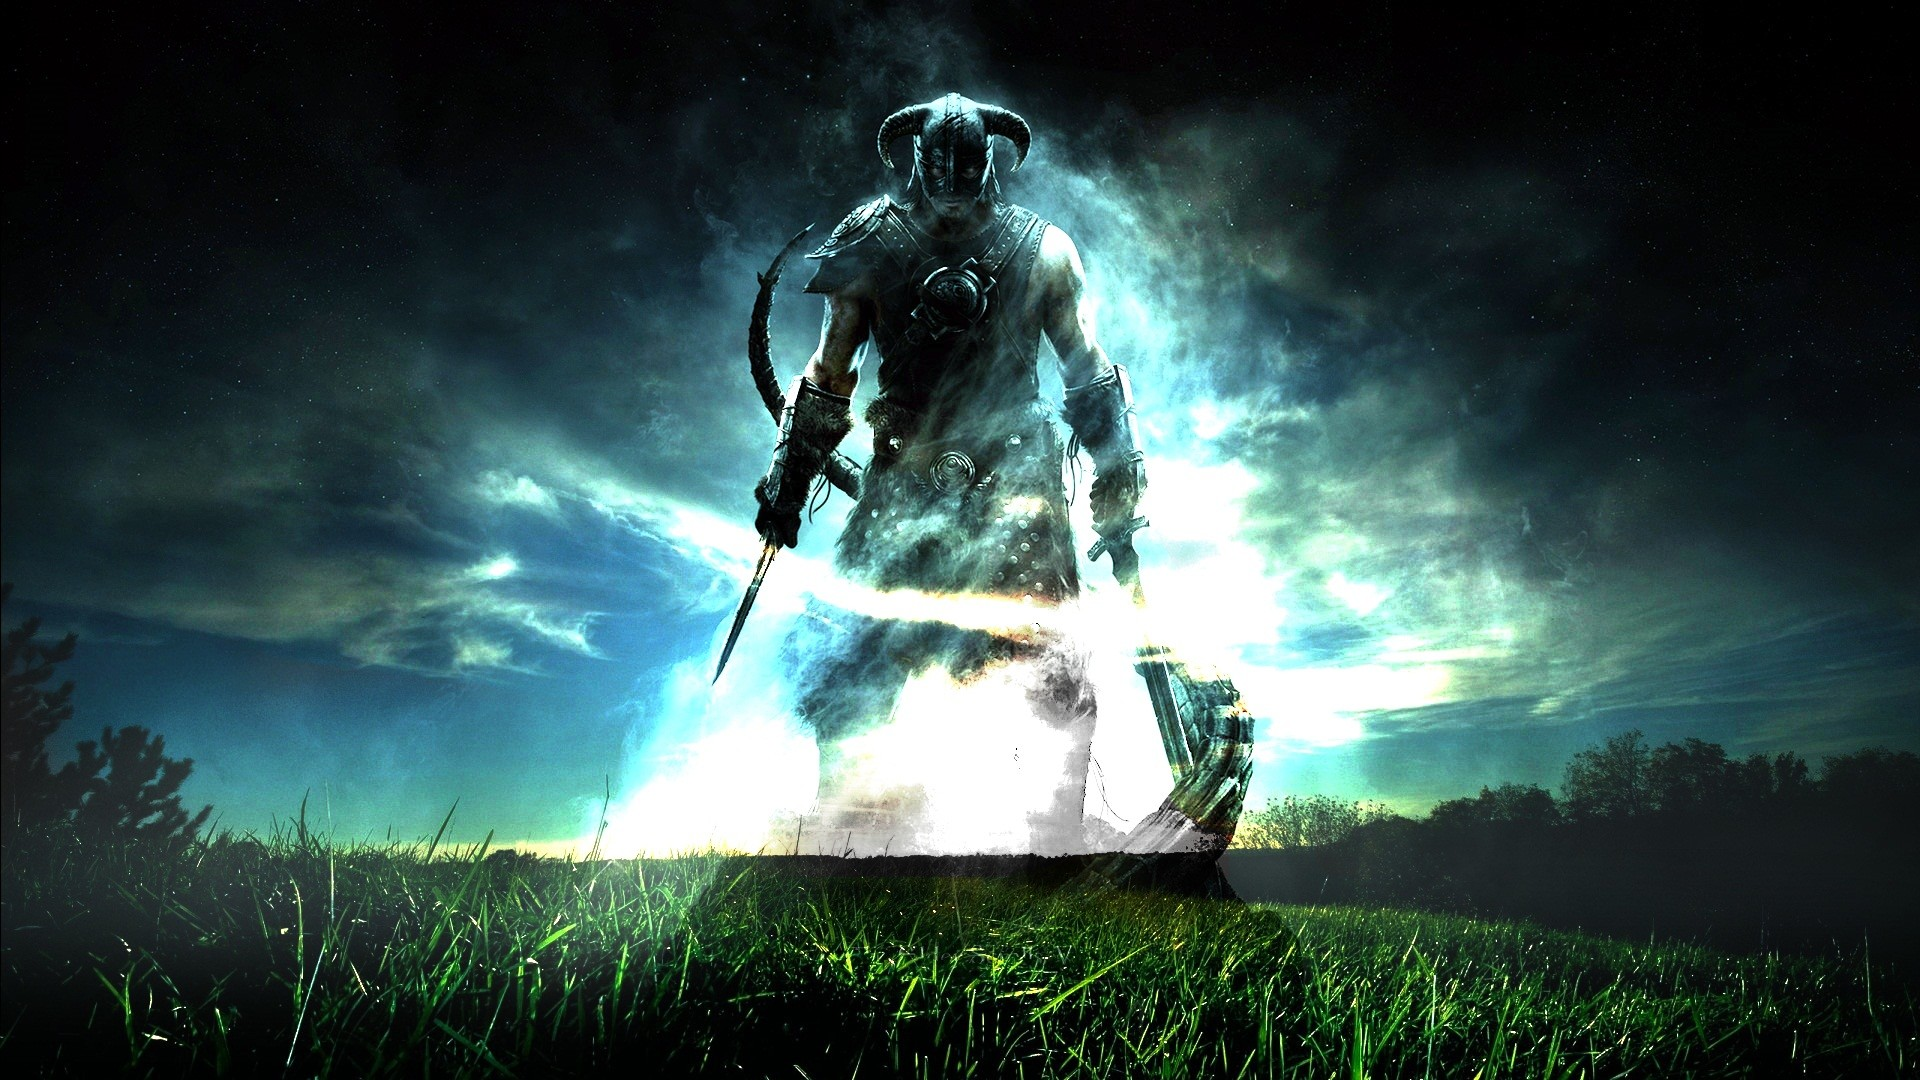 GAMING WALLPAPERS: Awesome Game Wallpapers